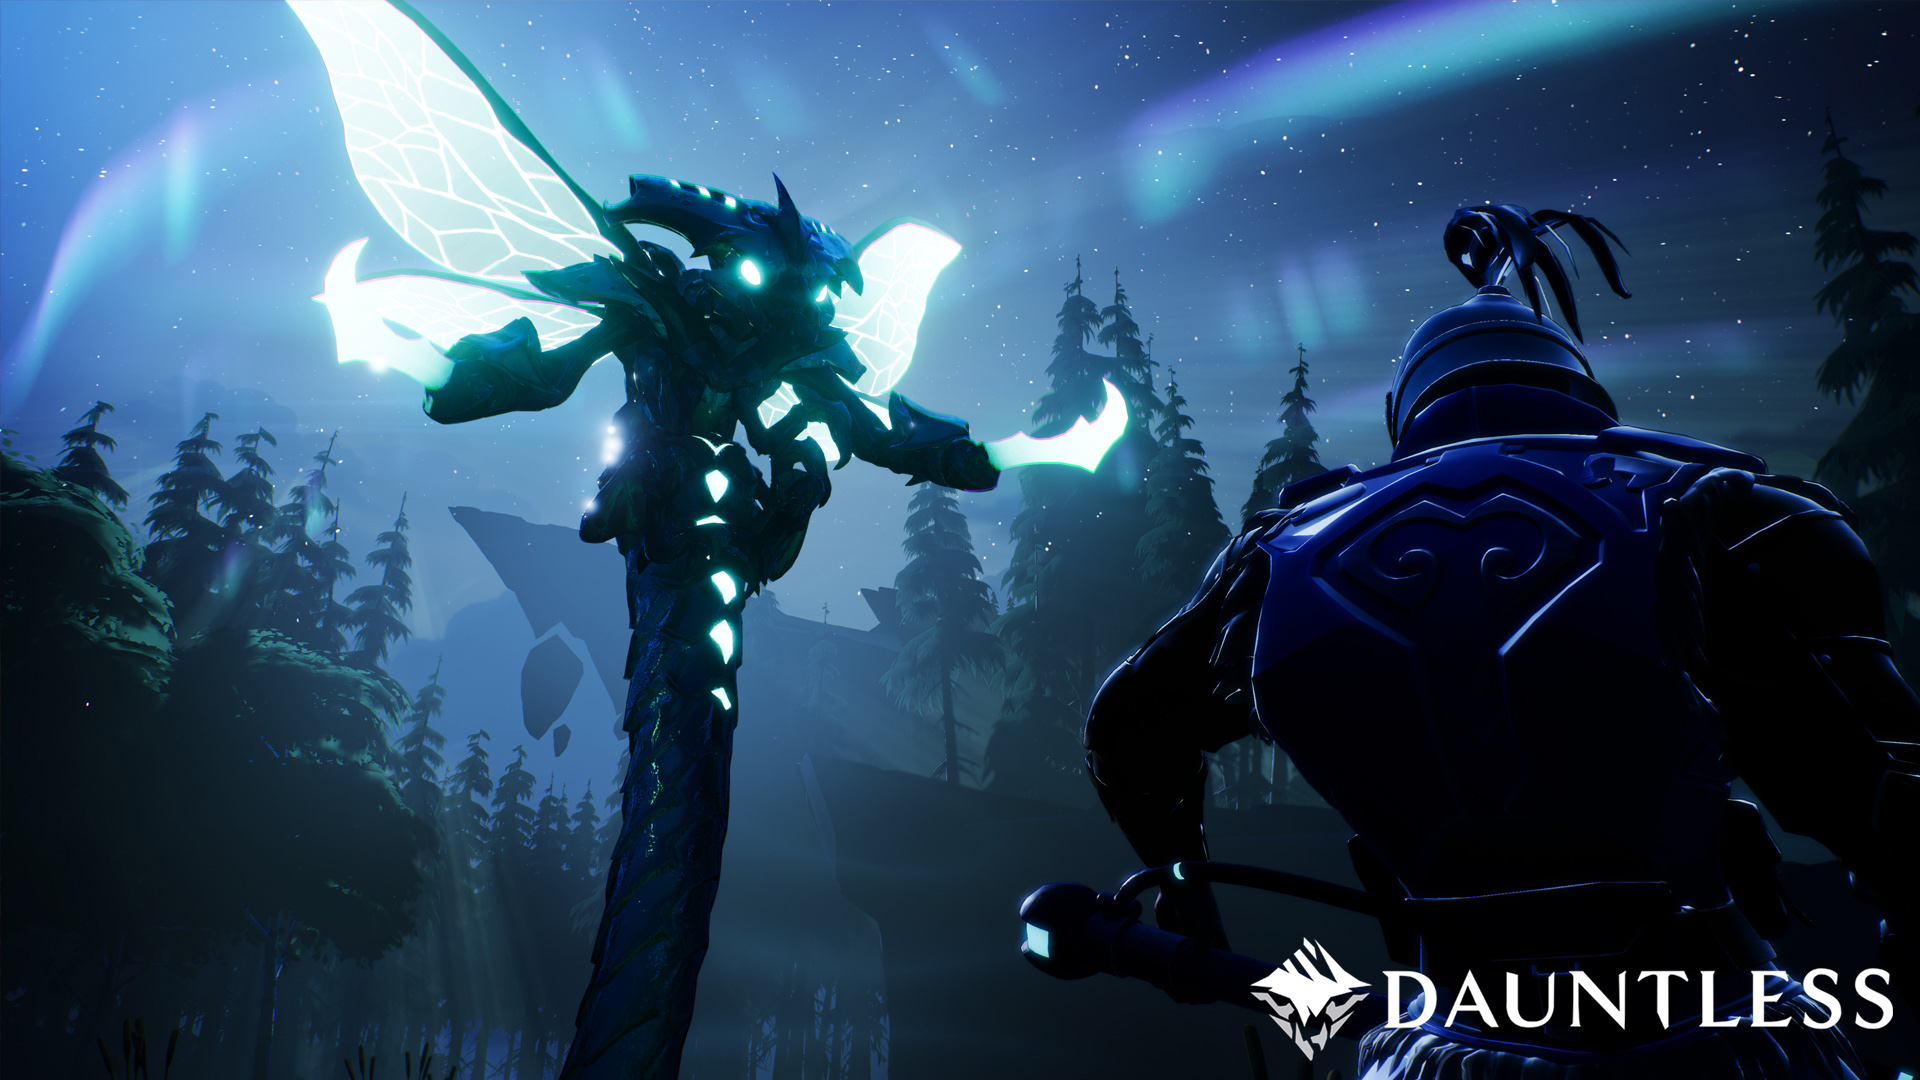 rezakiri-release_screenshot-dauntless.jpg